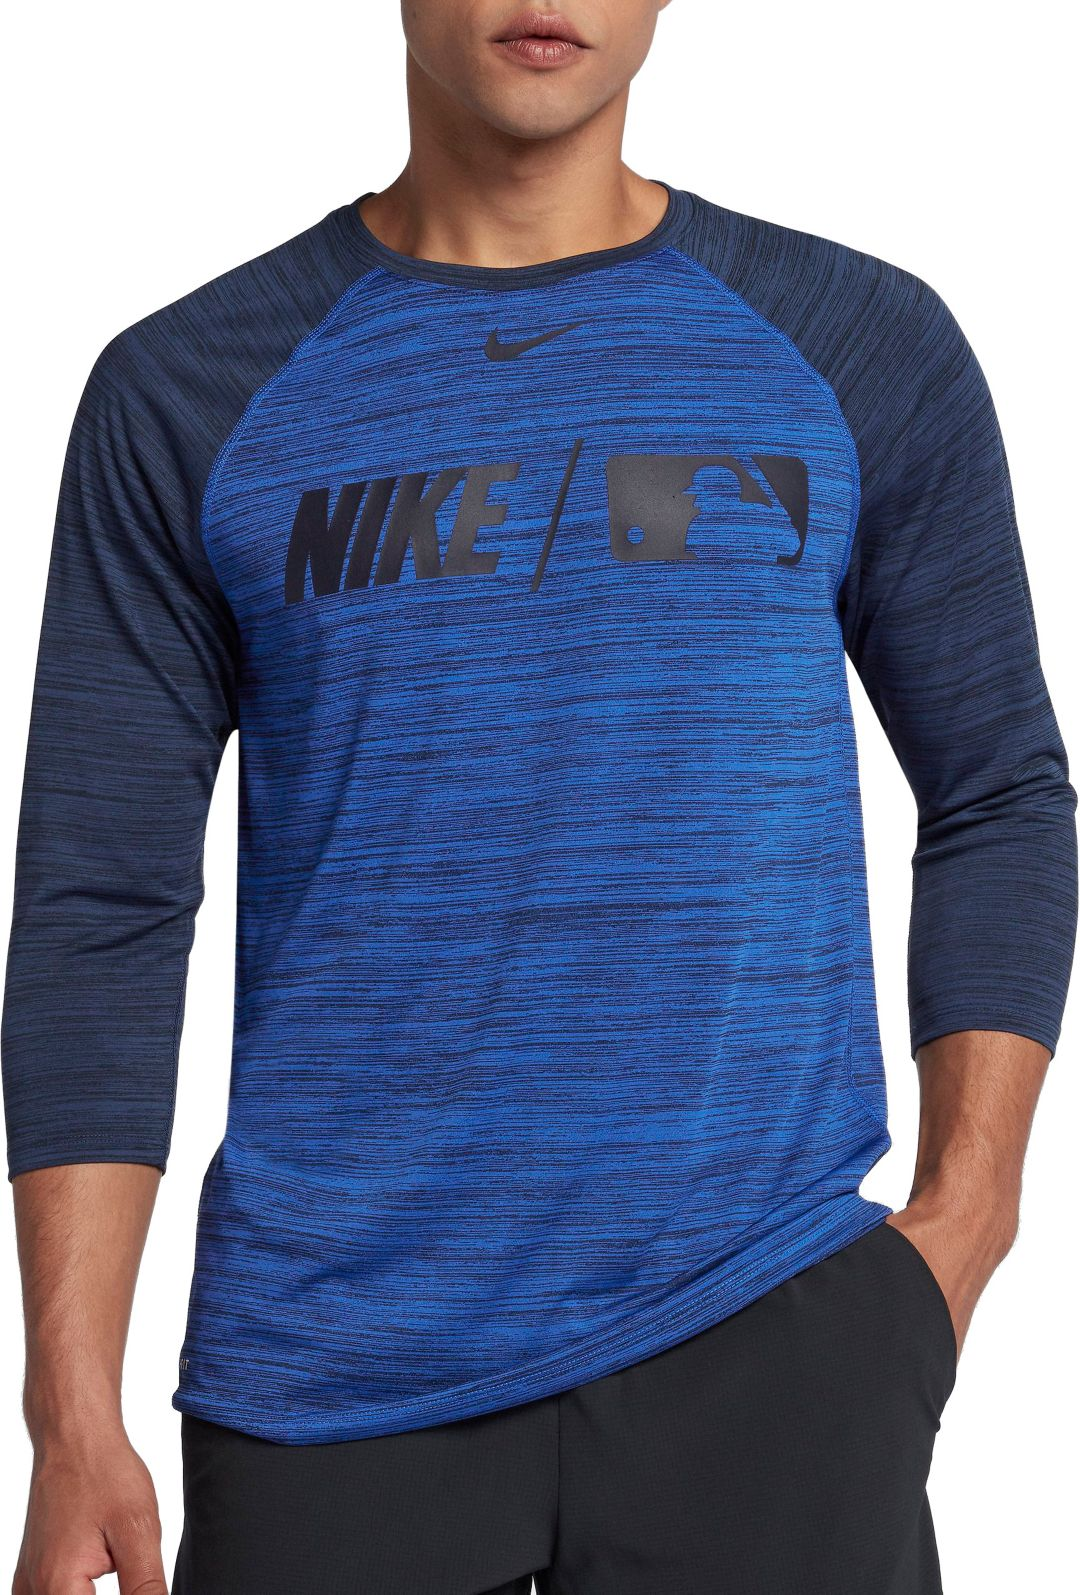 size 40 c9965 d59f1 Nike Men's Dry MLB 3/4 Sleeve Baseball T-Shirt